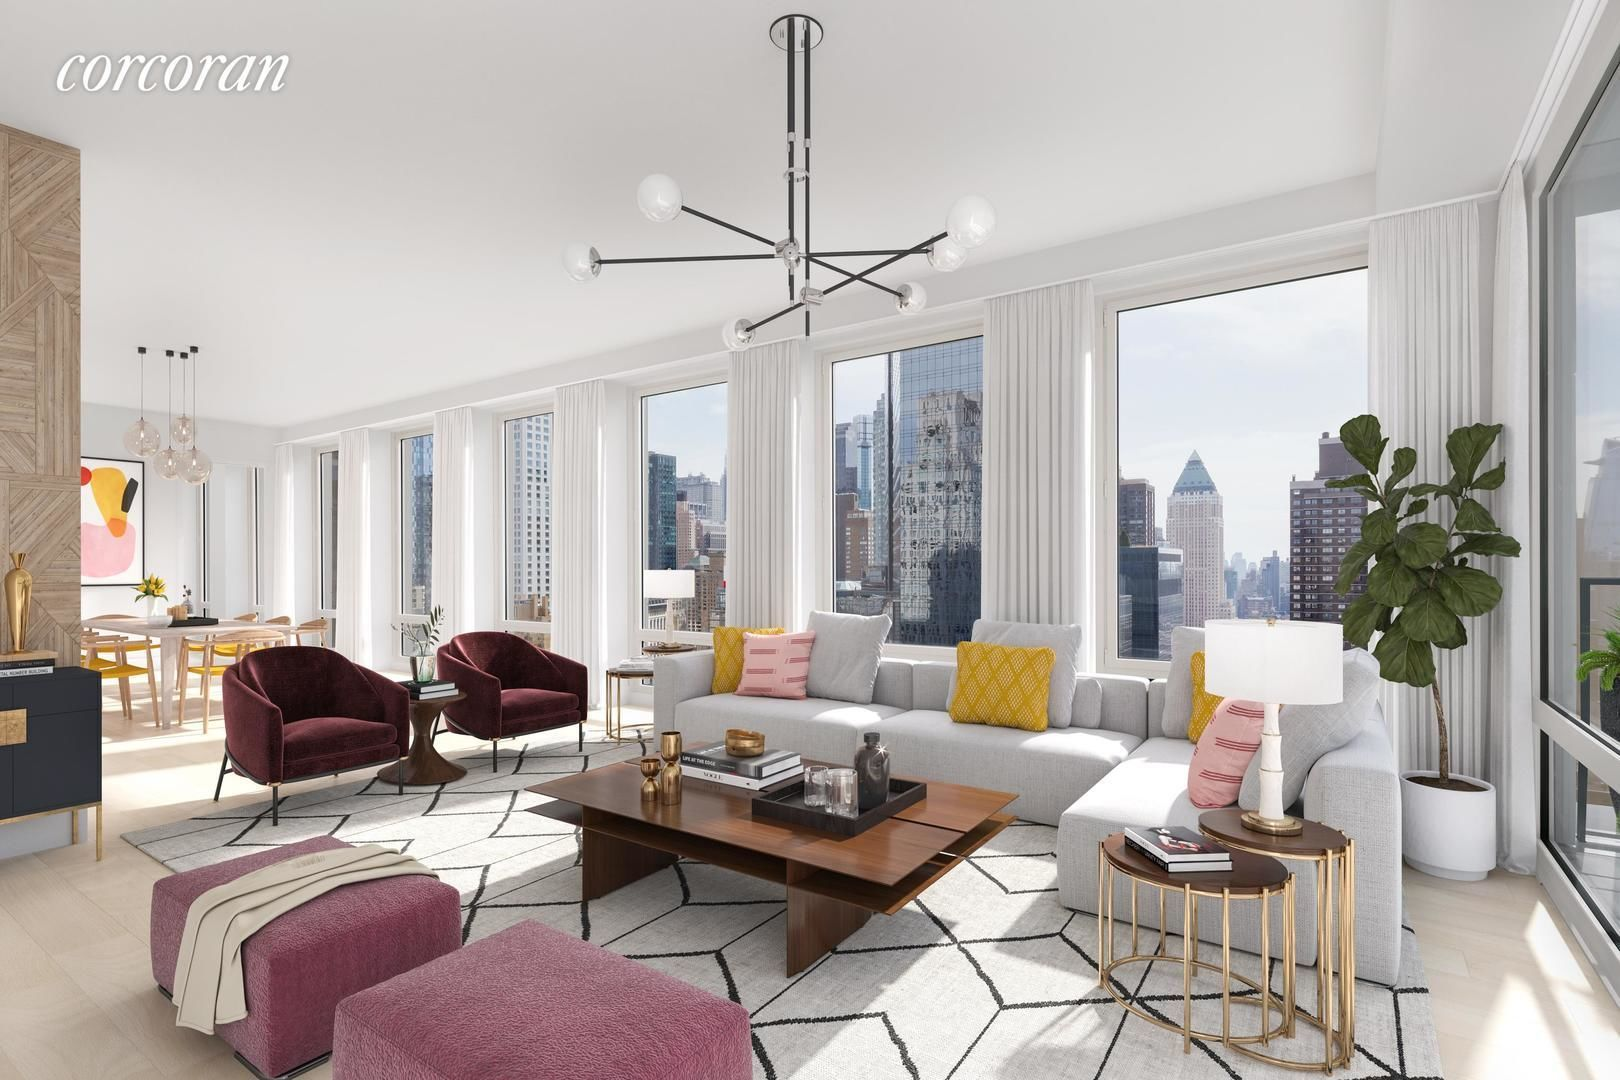 Apartment for sale at 15 West 61st Street, Apt PH31C